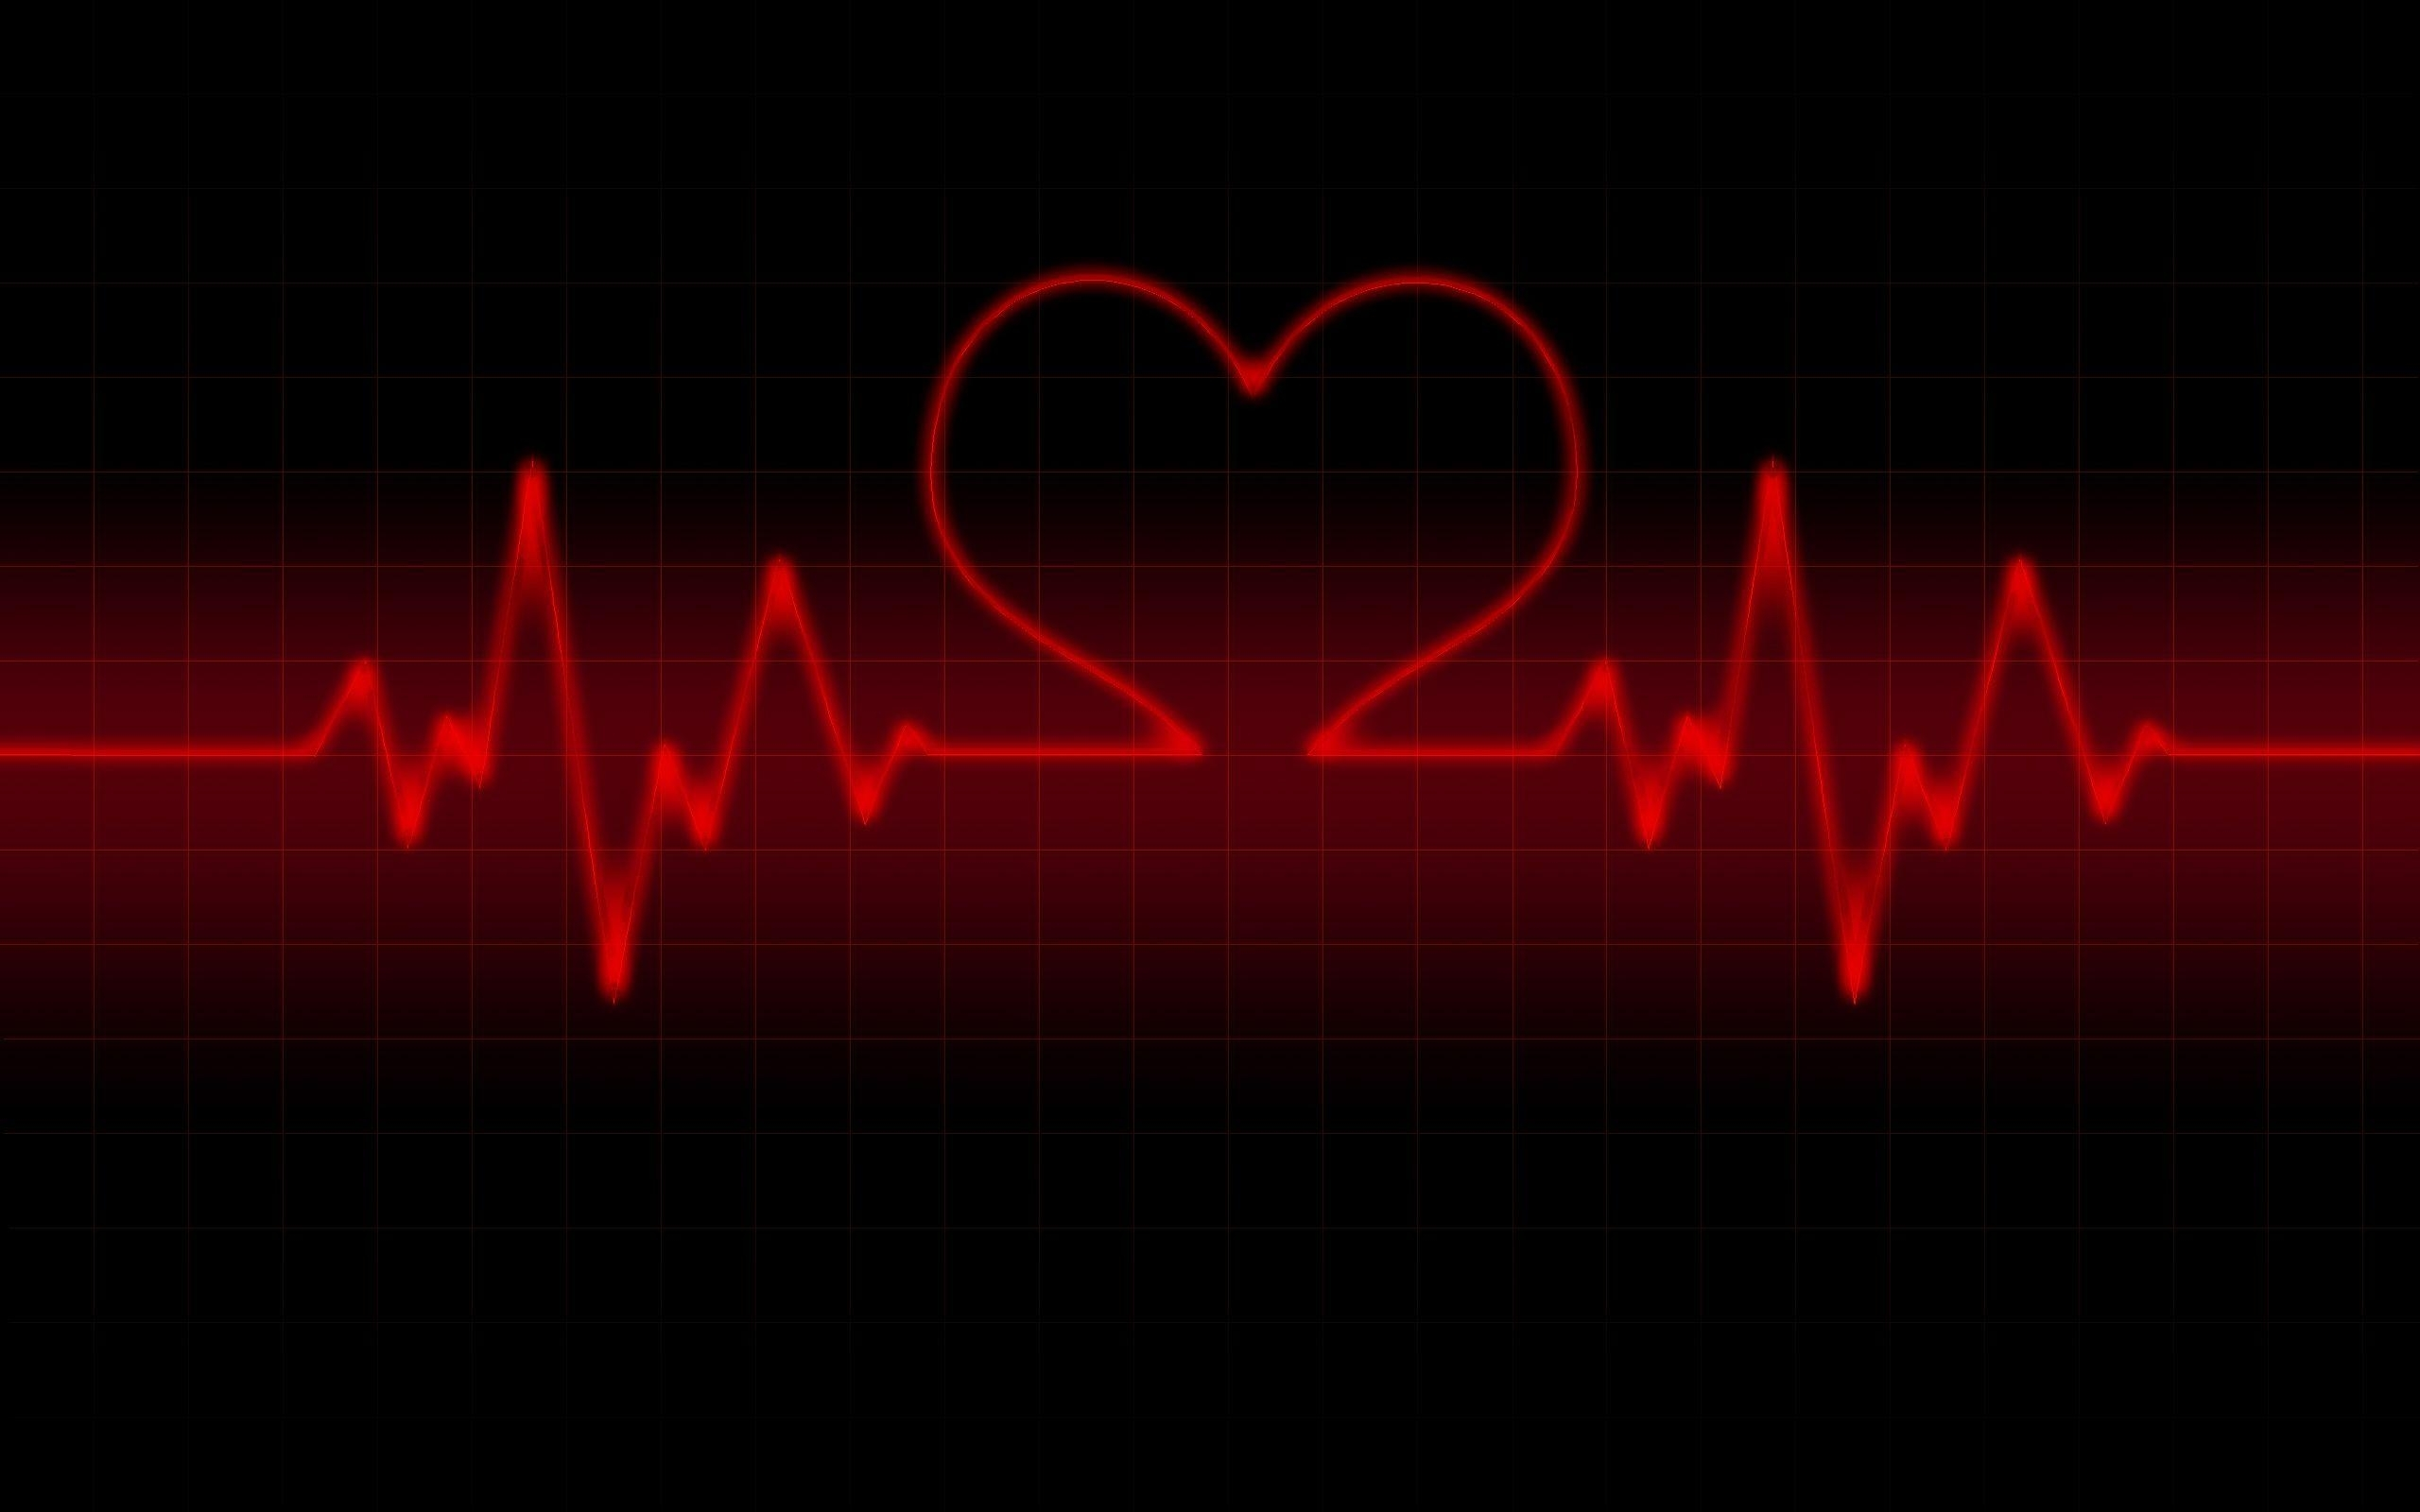 red heart with black backgrounds - wallpaper cave